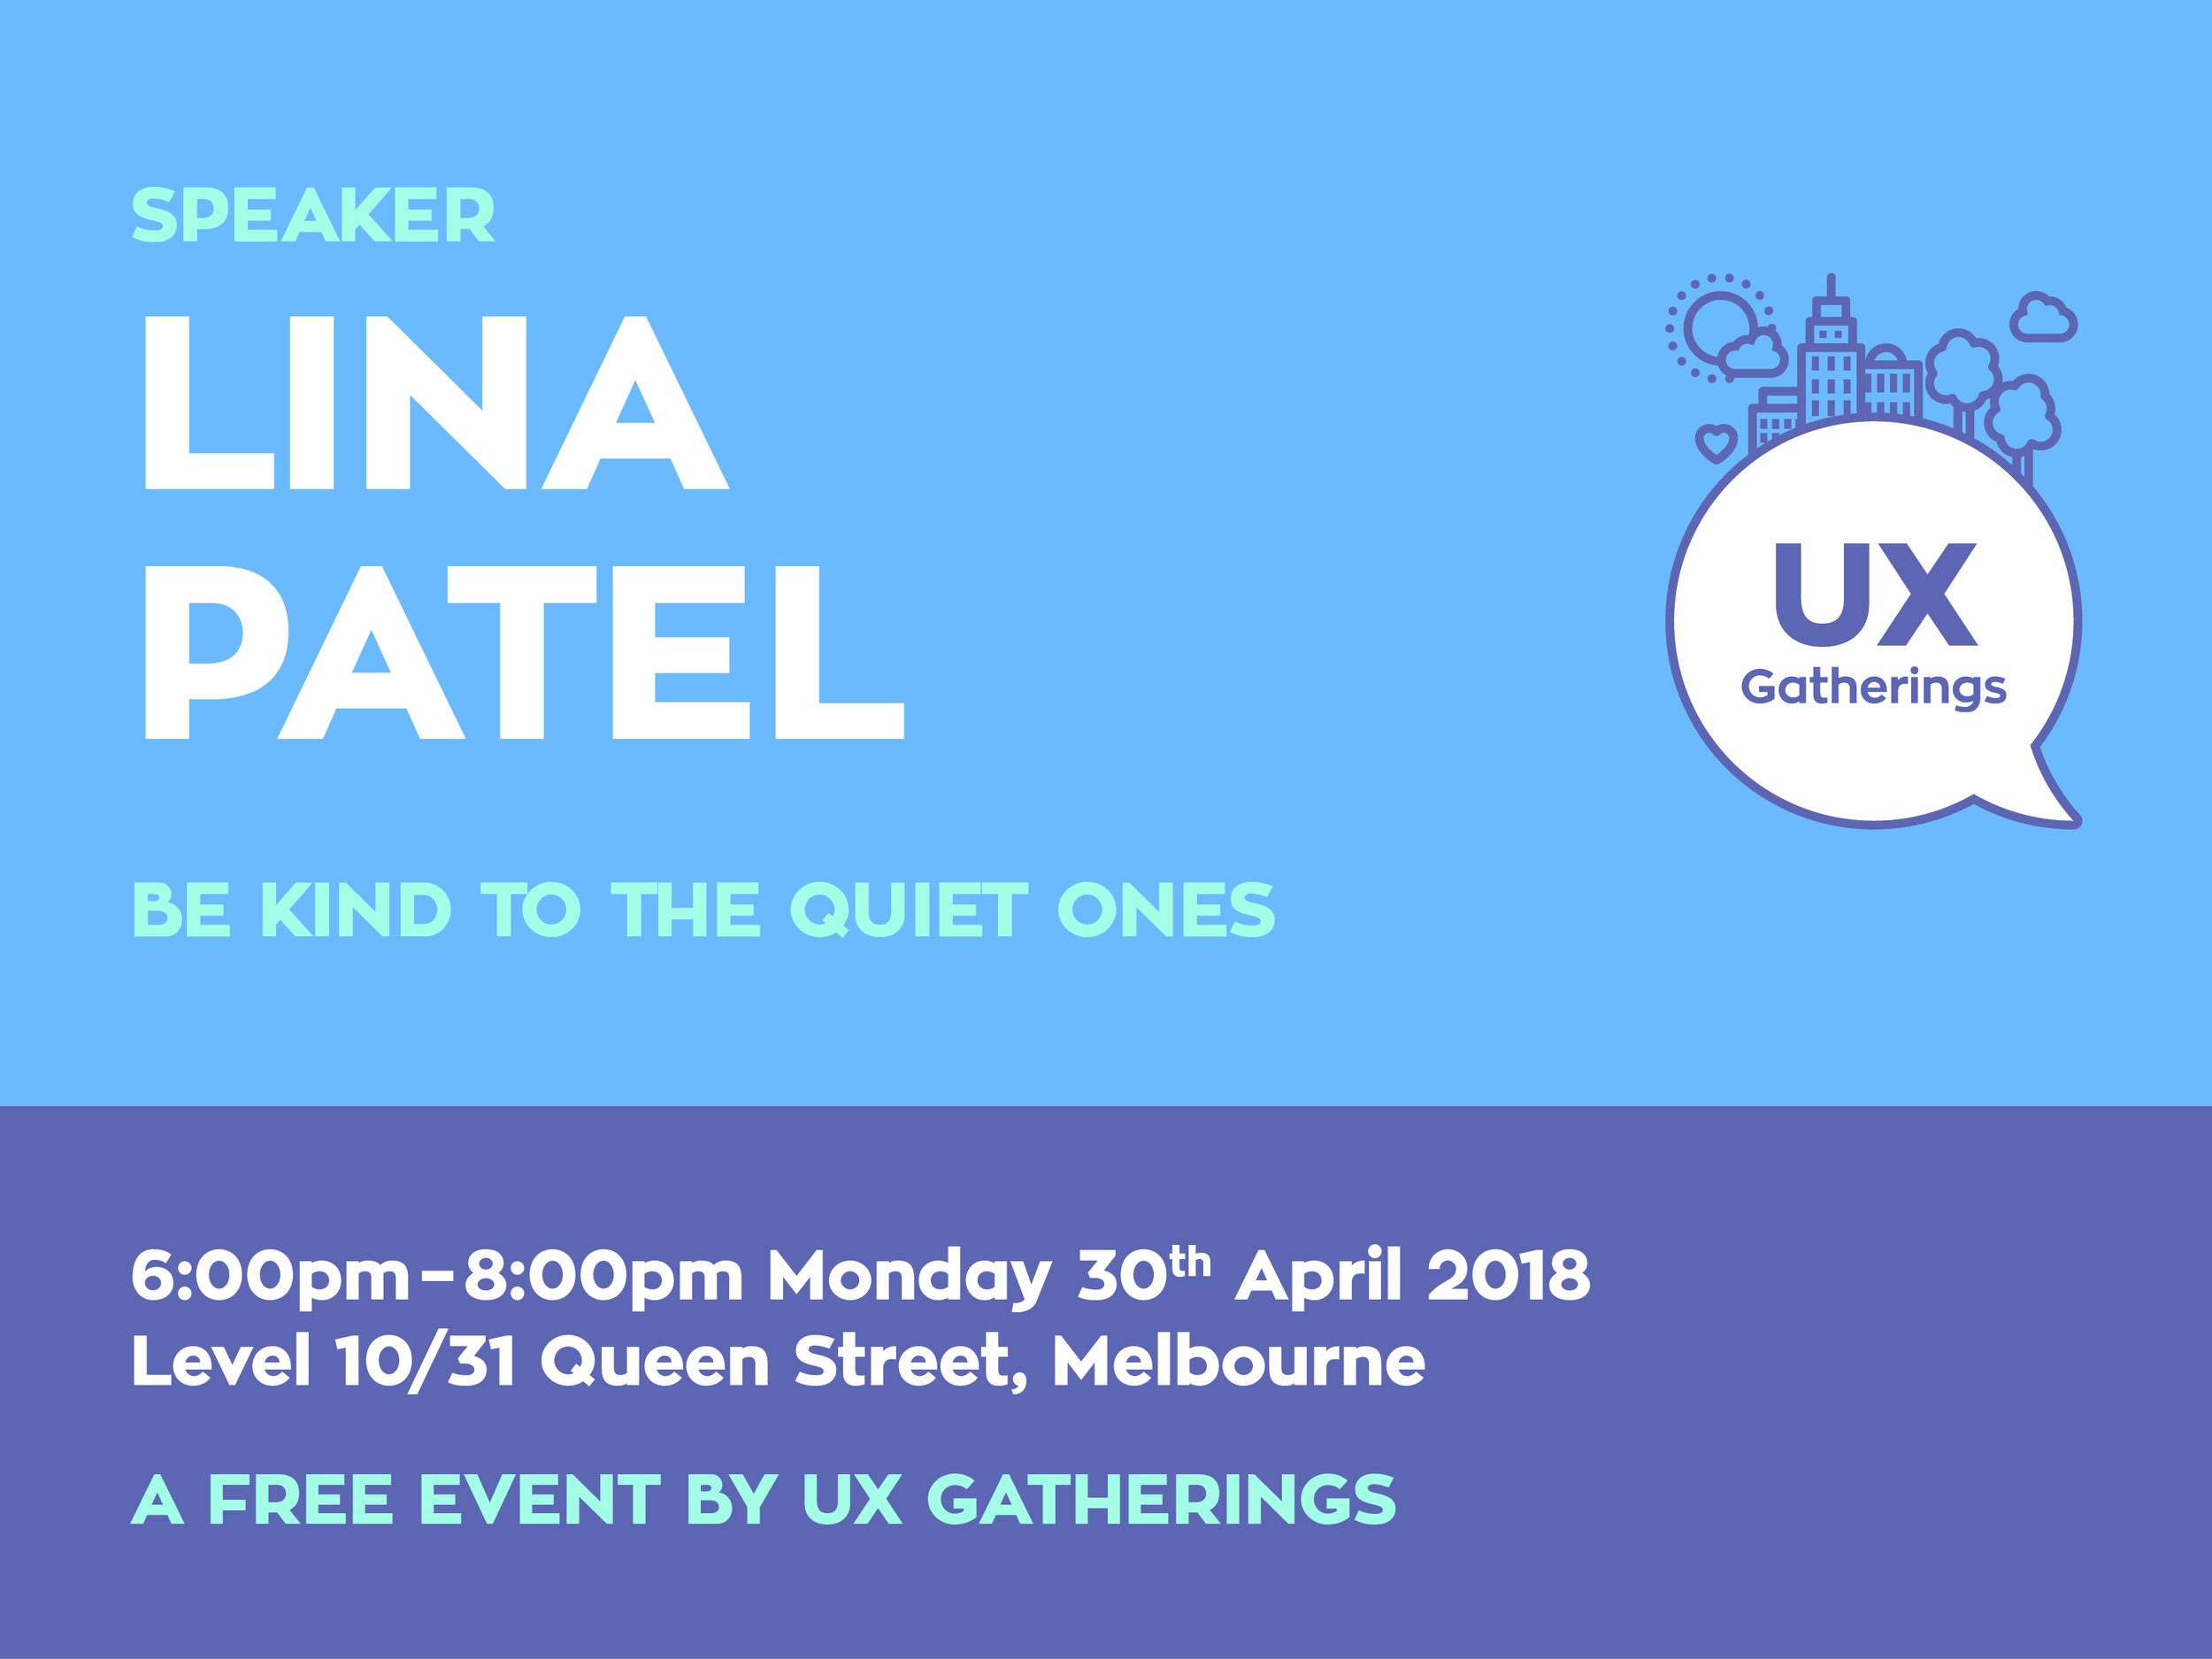 UX-Gatherings_Event_Lina-Patel.jpg